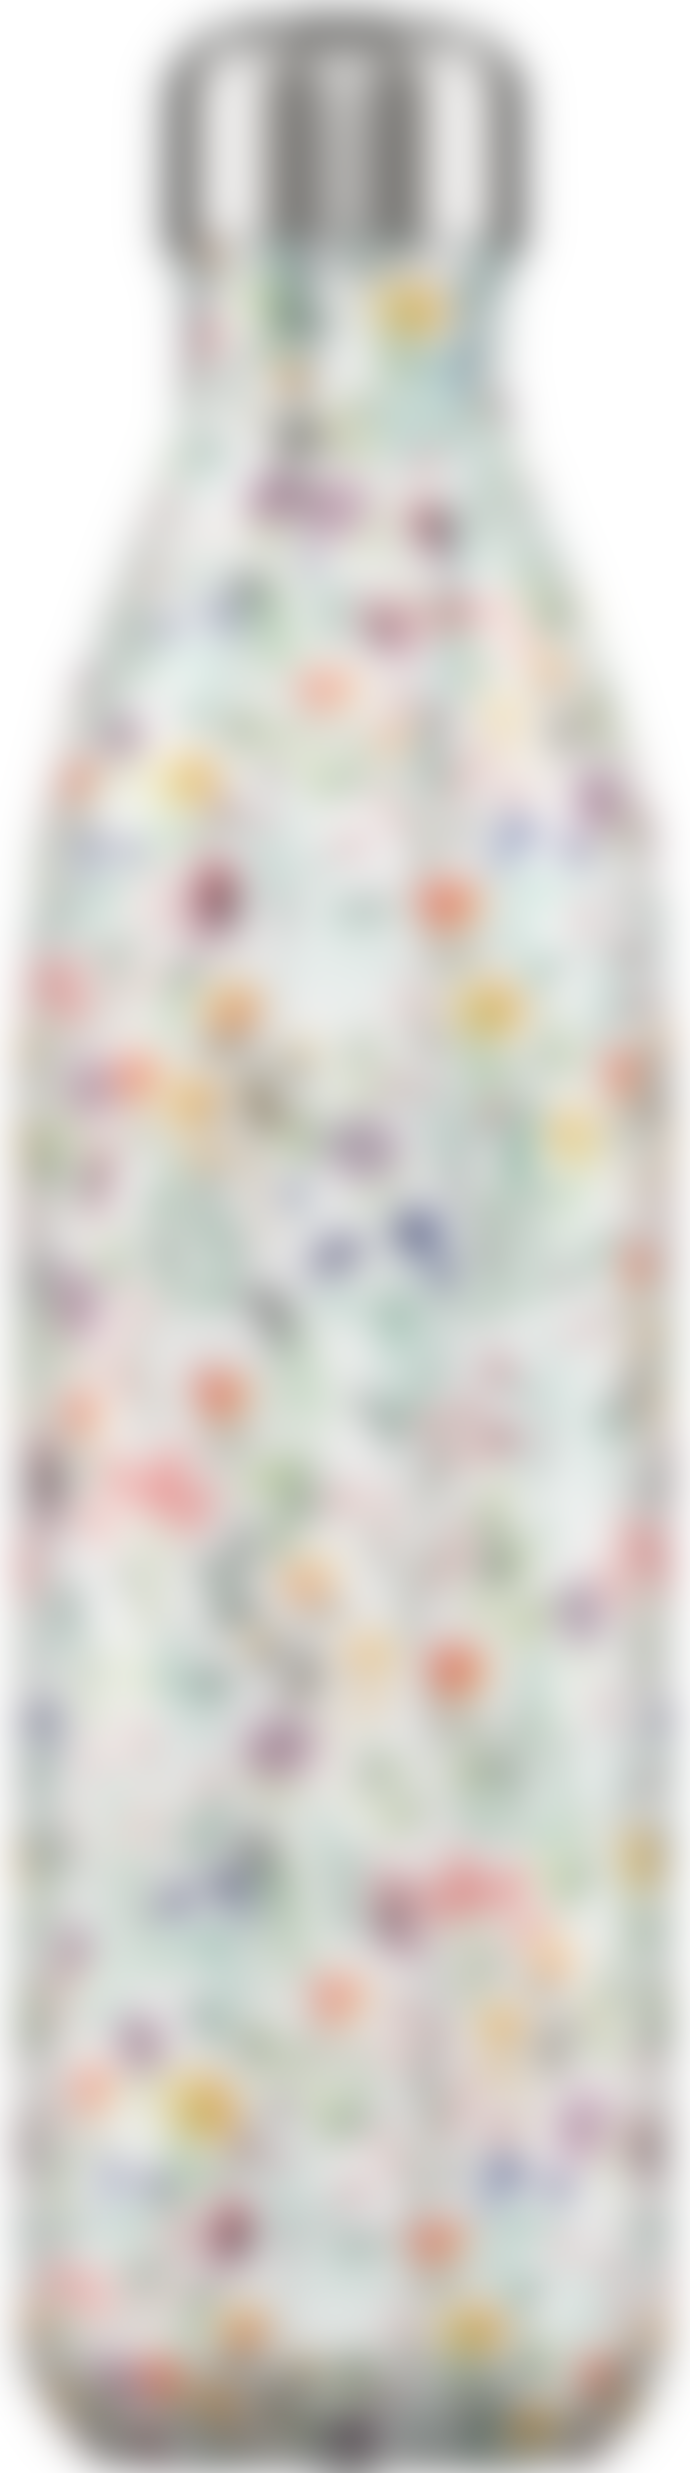 Chilly's Bottles 0.75 l Floral Meadow Clima Bottle